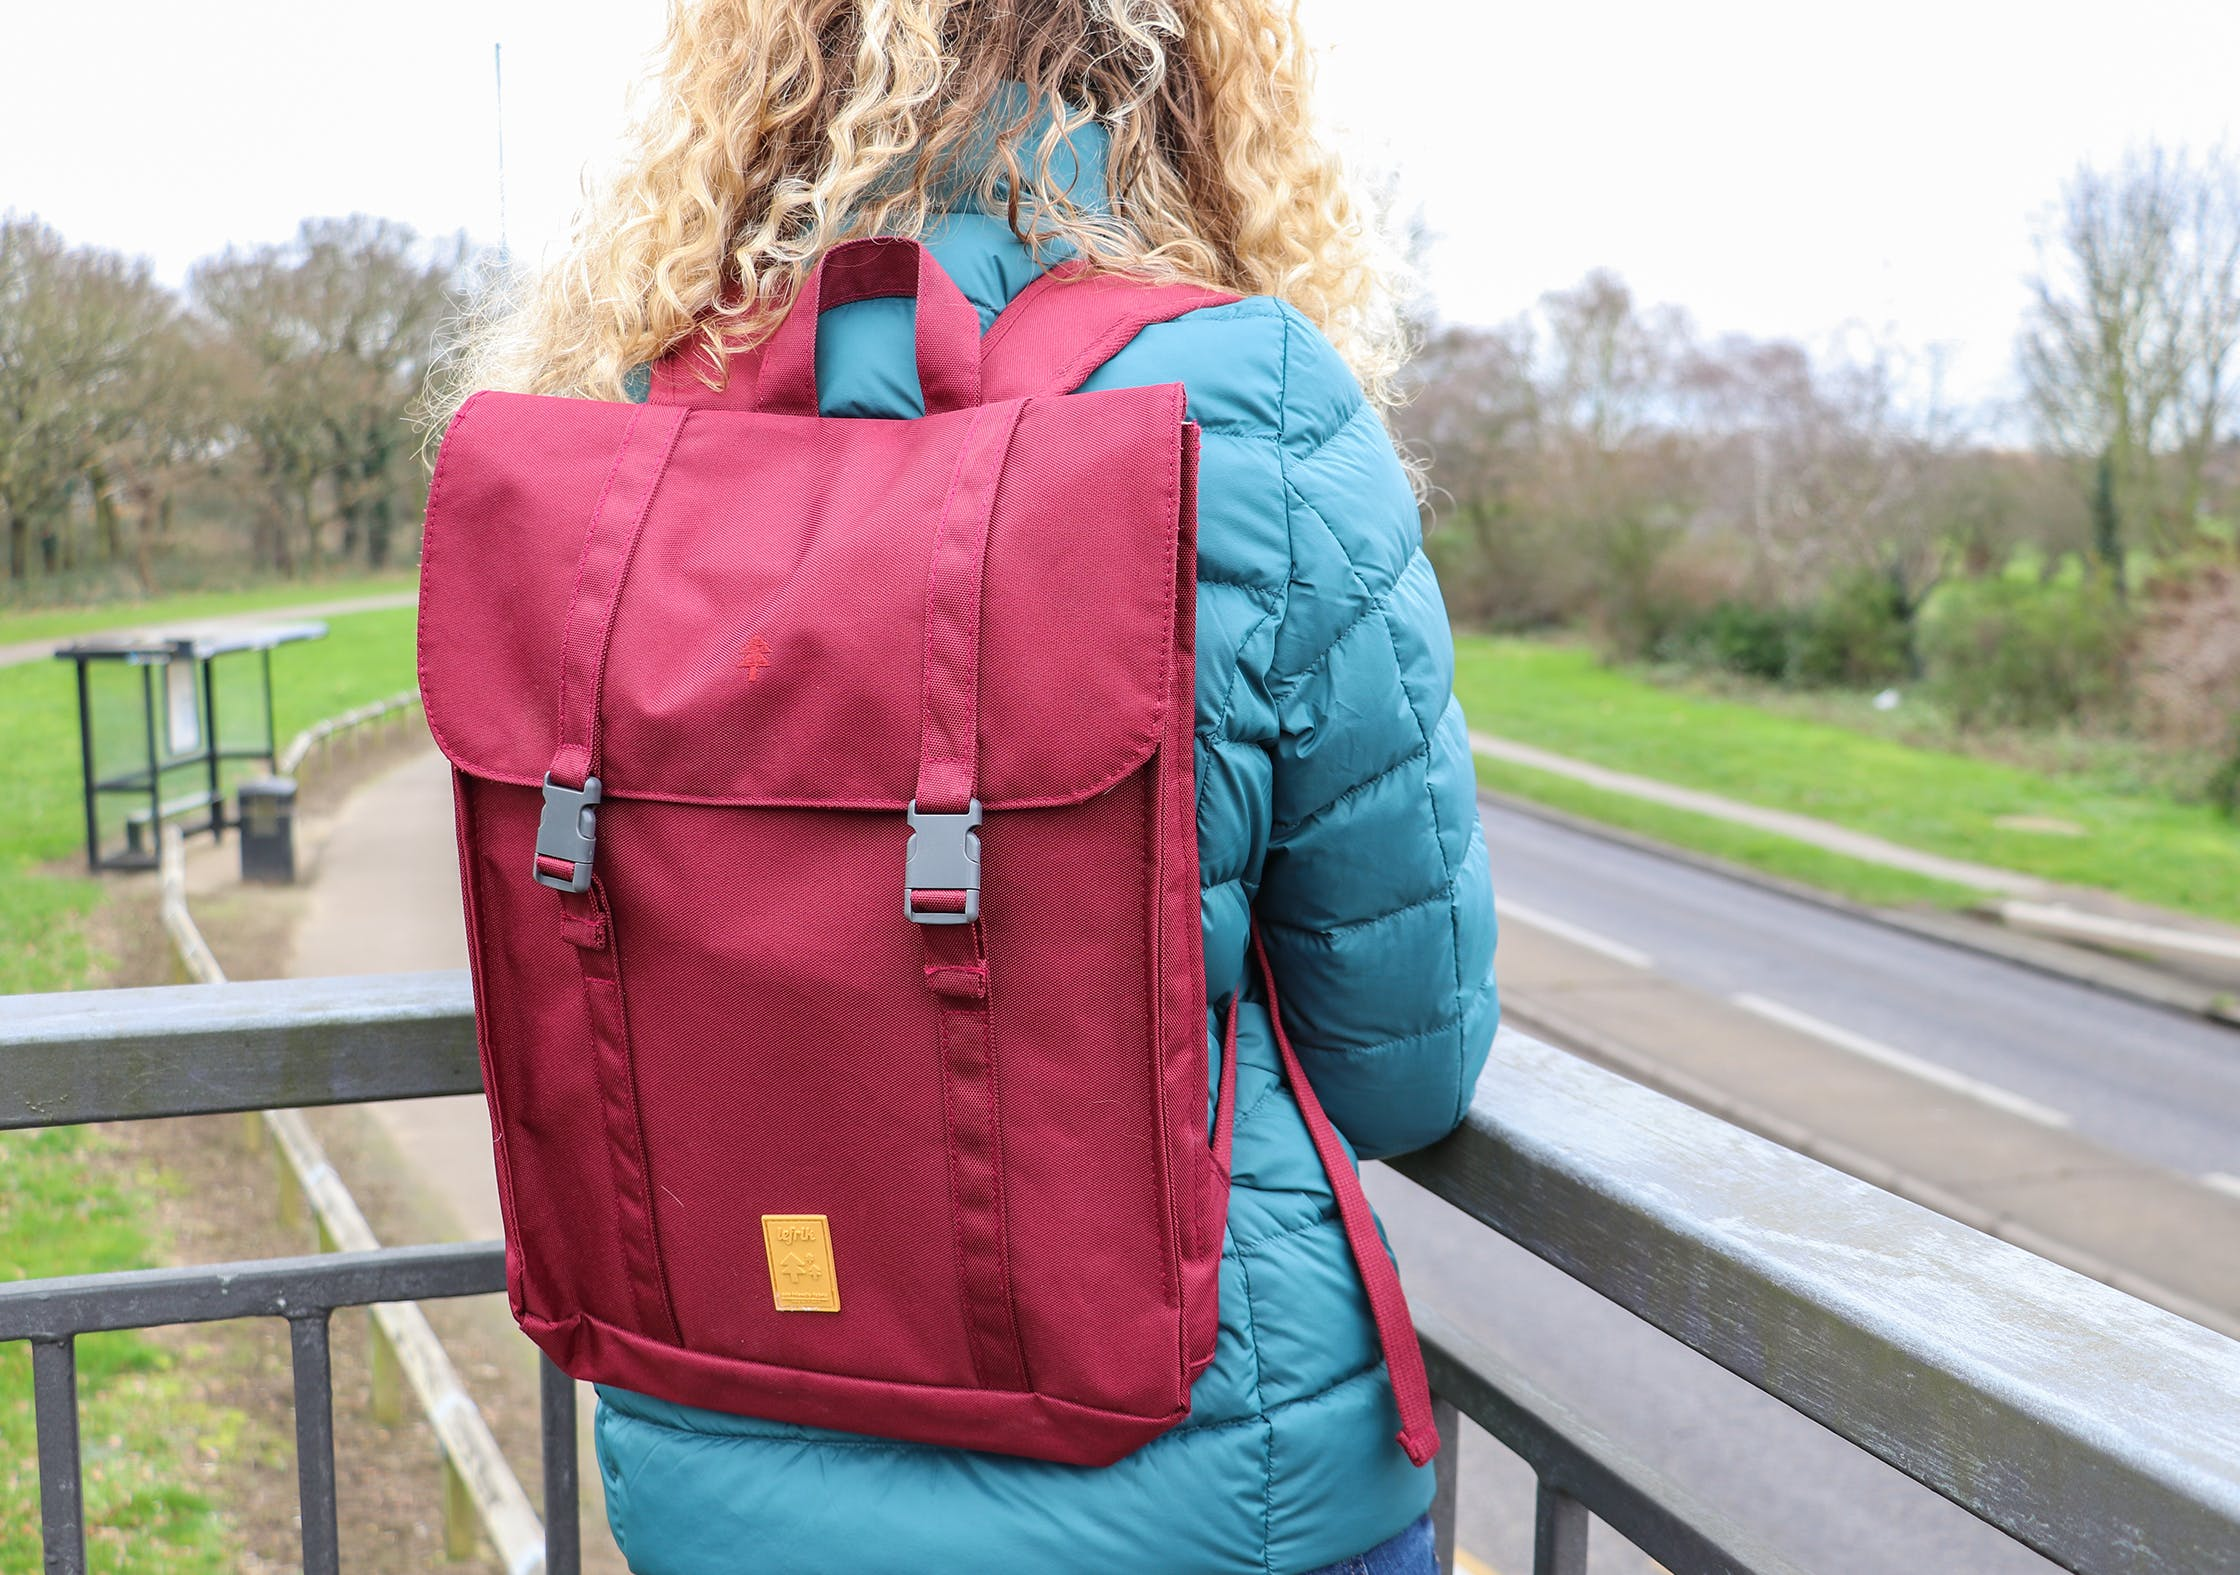 Lefrik Handy Backpack In Essex, England